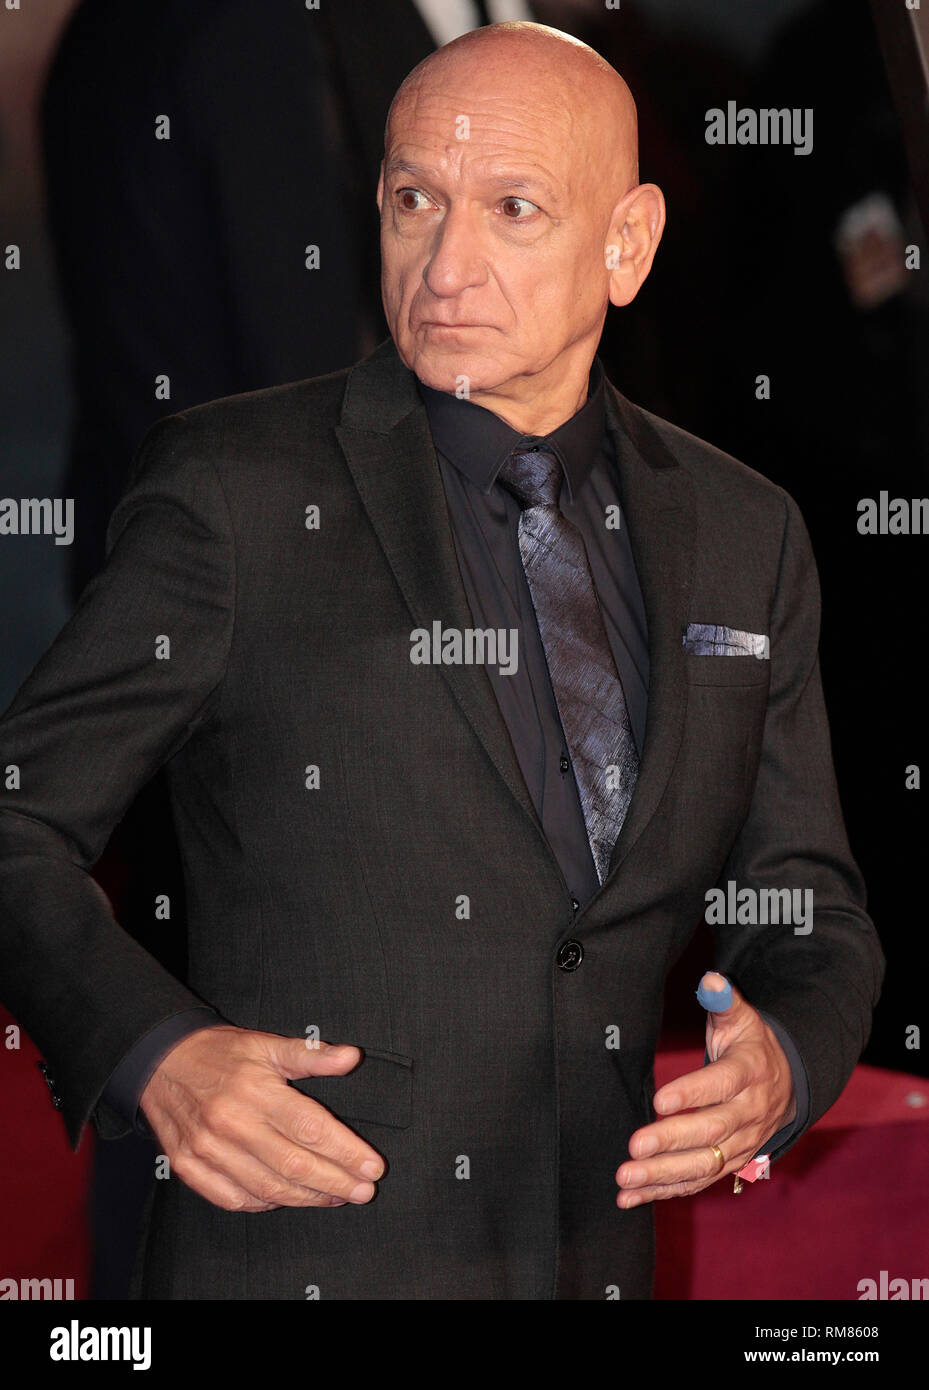 Dec 3, 2014 - Exodus: Gods And Kings World Premiere - VIP Red Carpet Arrivals at Odeon,  Leicester Square, London Pictured: Ben Kingsley - Stock Image